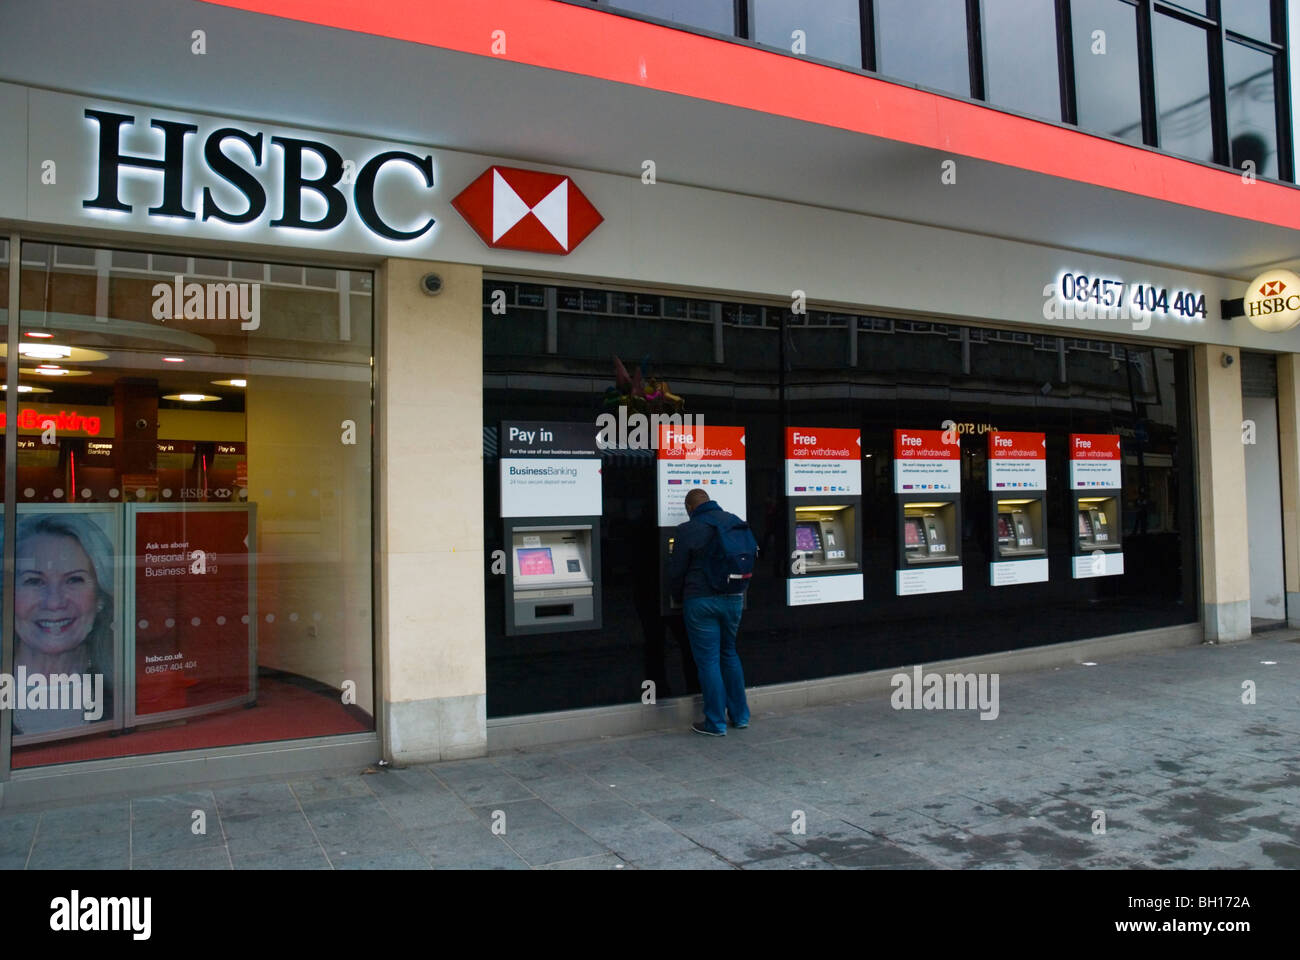 Person using HSBC cash dispenser Liverpool One shopping area Liverpool Merseyside England UK Europe - Stock Image